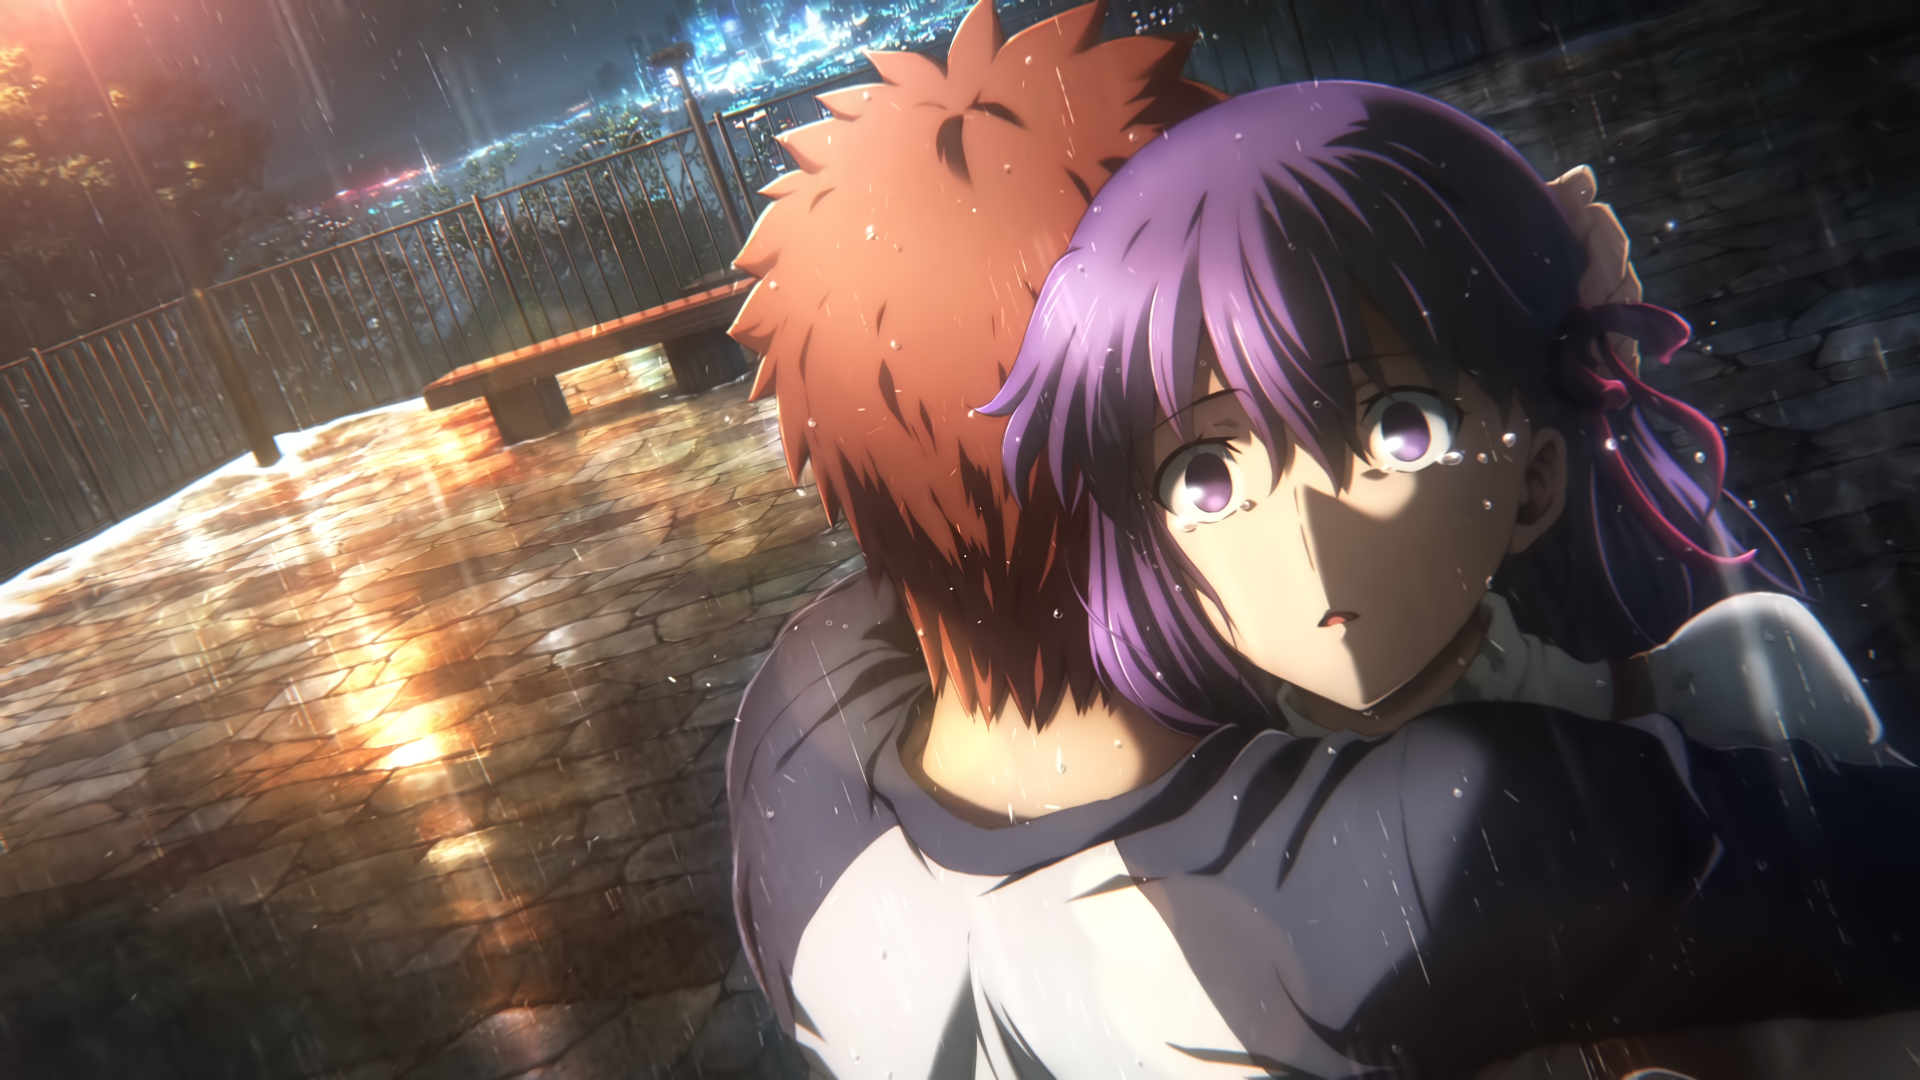 ©Fate/stay night: Heaven's Feel II - Lost Butterfly